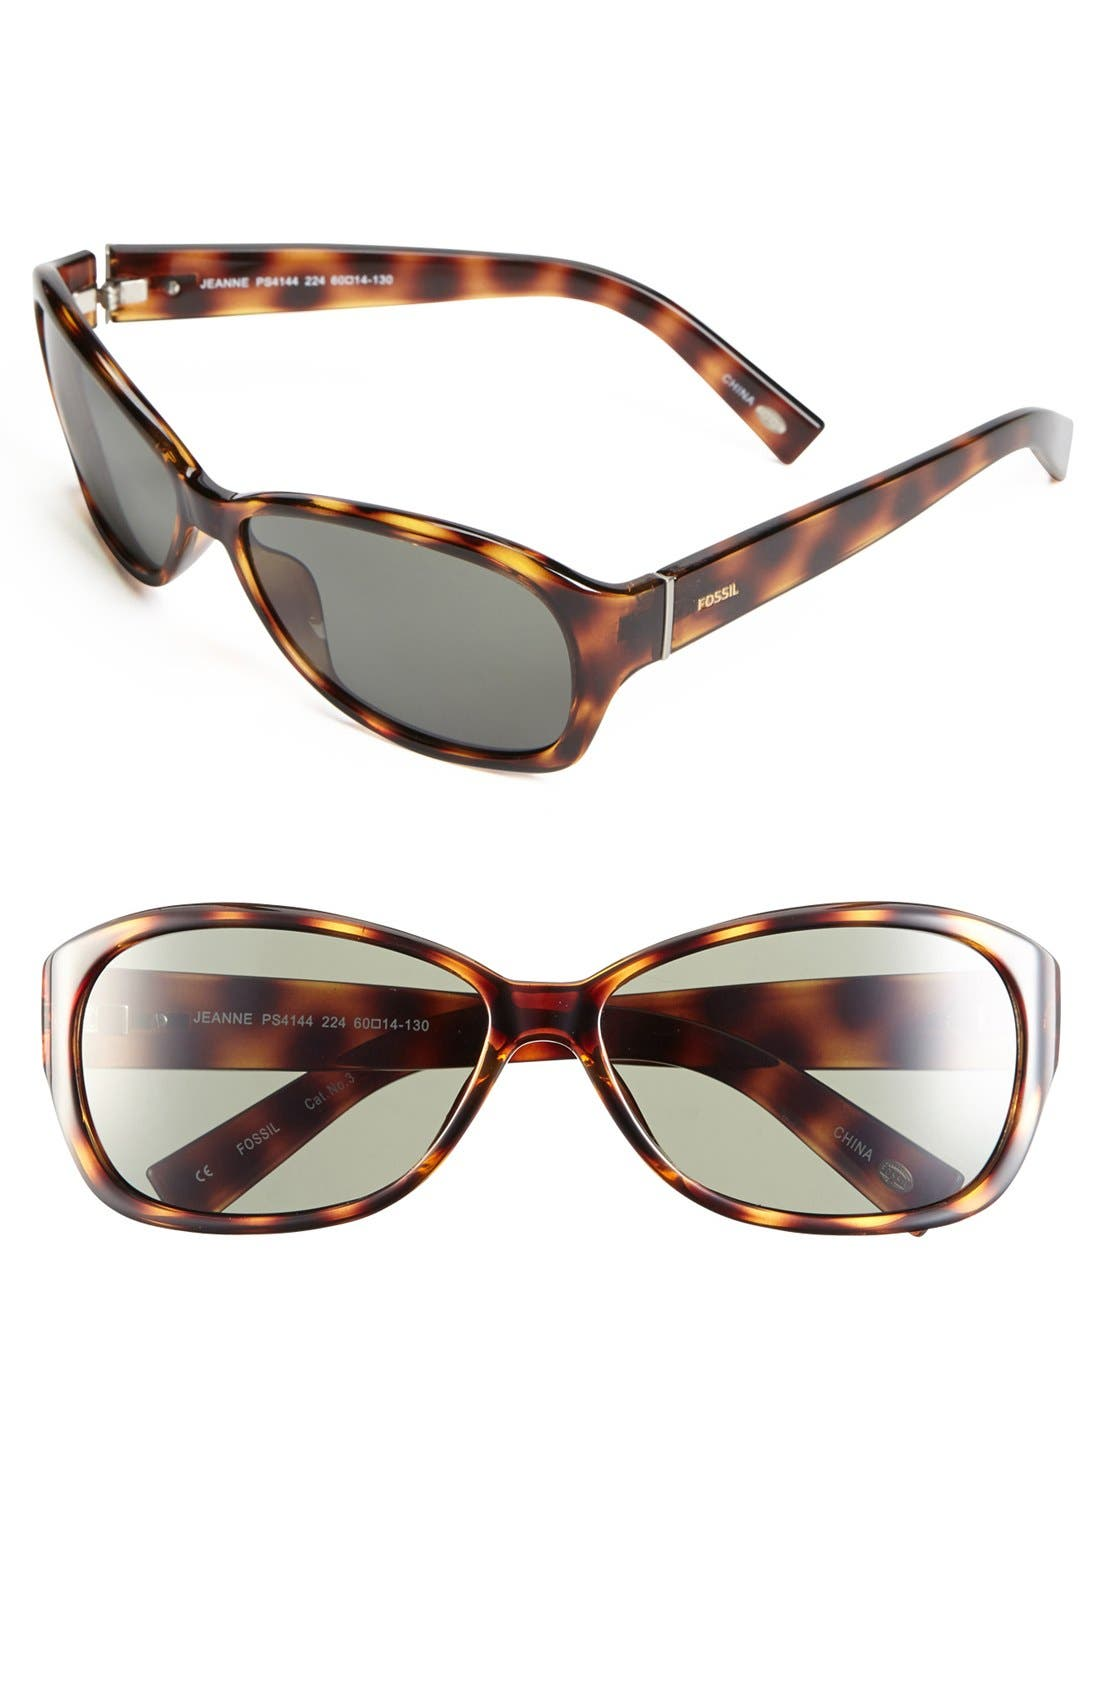 Main Image - Fossil 'Jeanne' 60mm Sunglasses